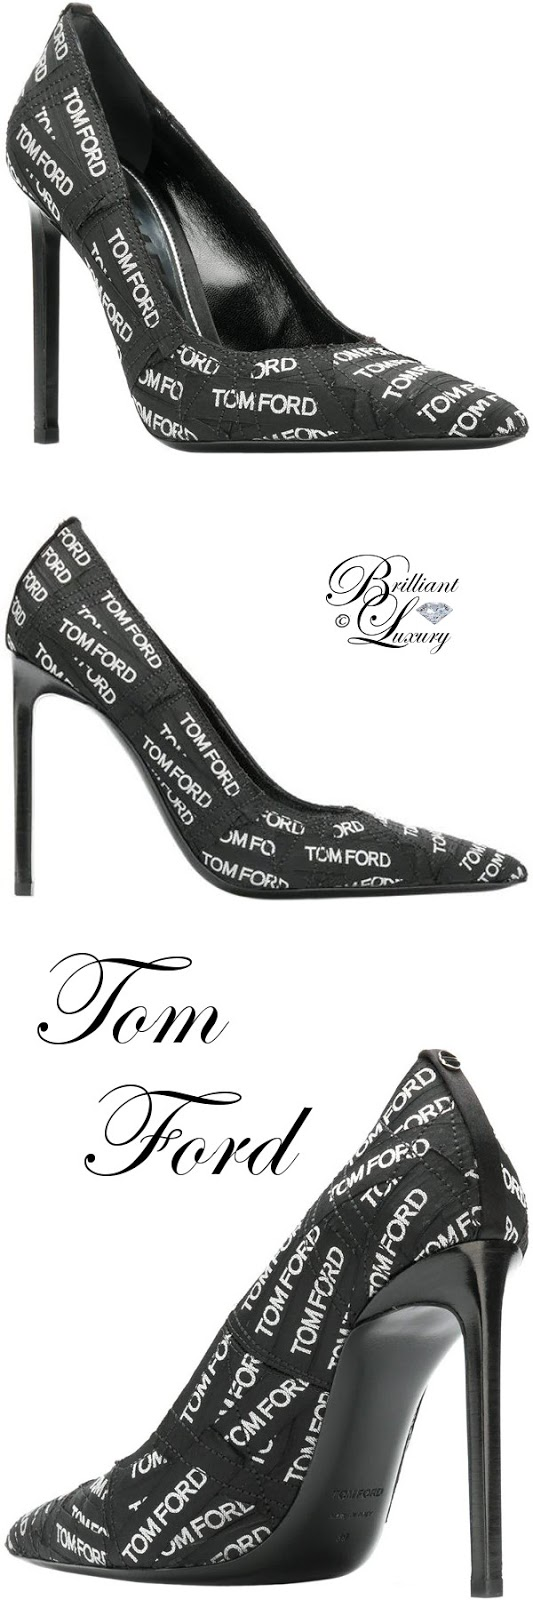 Brilliant Luxury ♦ Tom Ford all over logo pumps #black